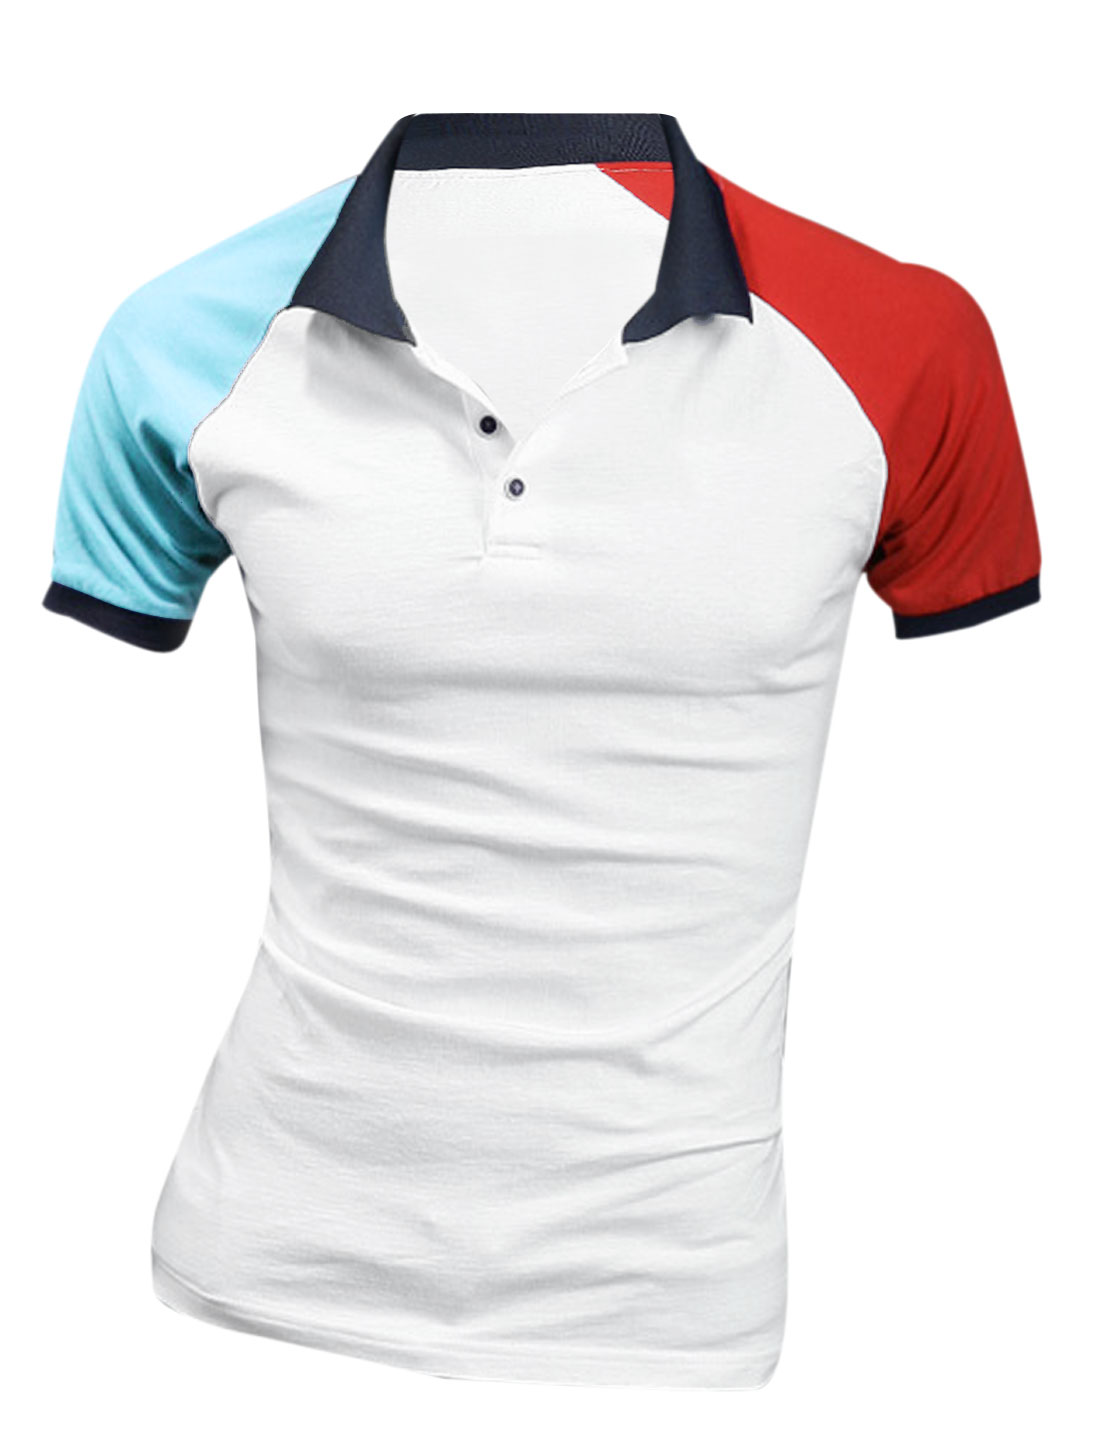 Men Point Collar Short Raglan Sleeve Polo Shirt White Red M